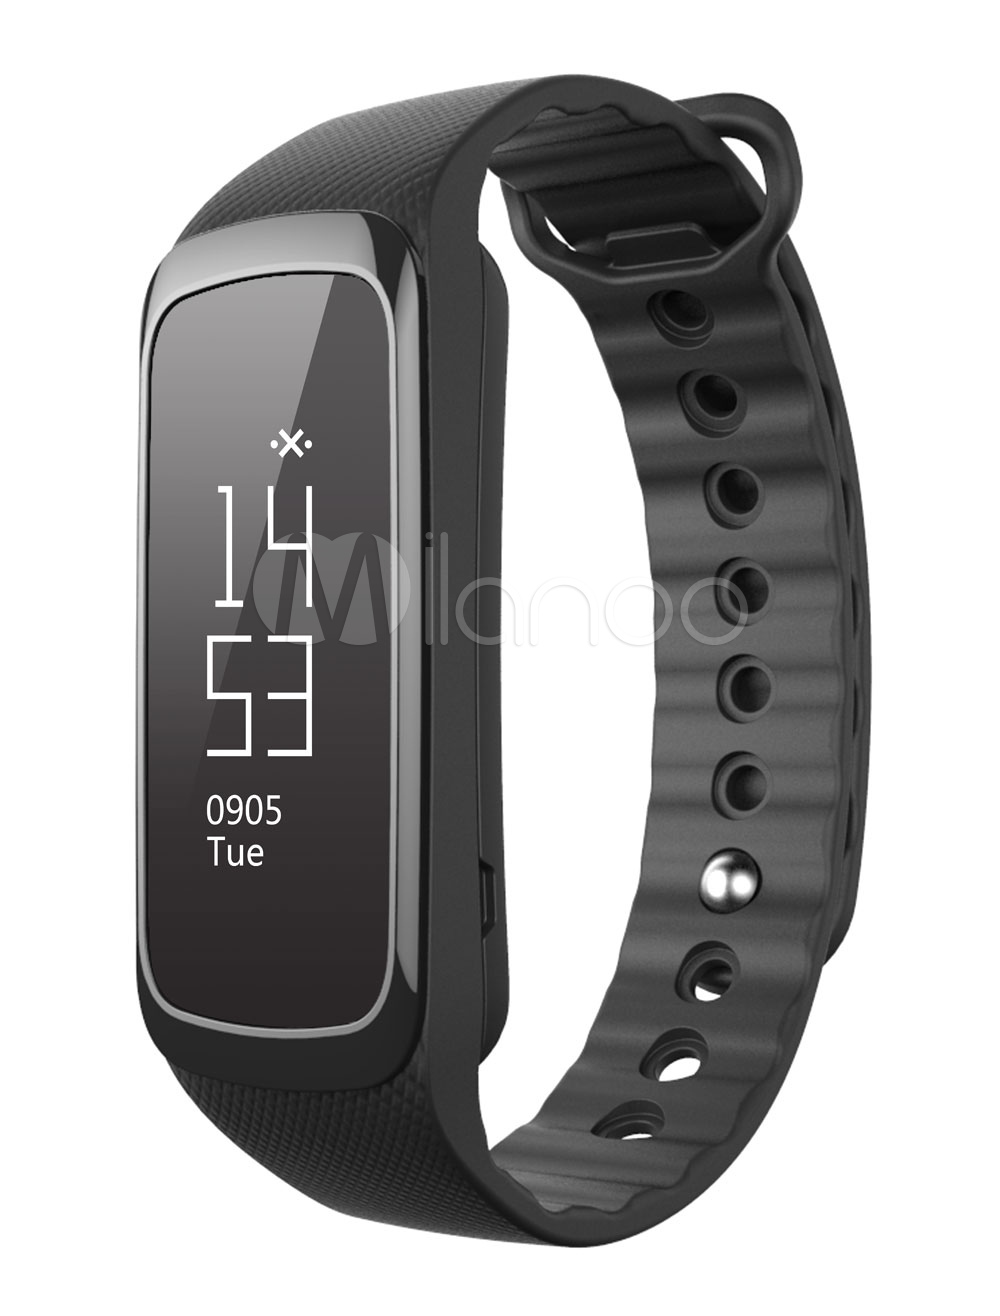 Lenovo Smart Band Waterproof 5ATM Heart Rate OLED Screen Multi Function G03 Fitness Smart Band Watch